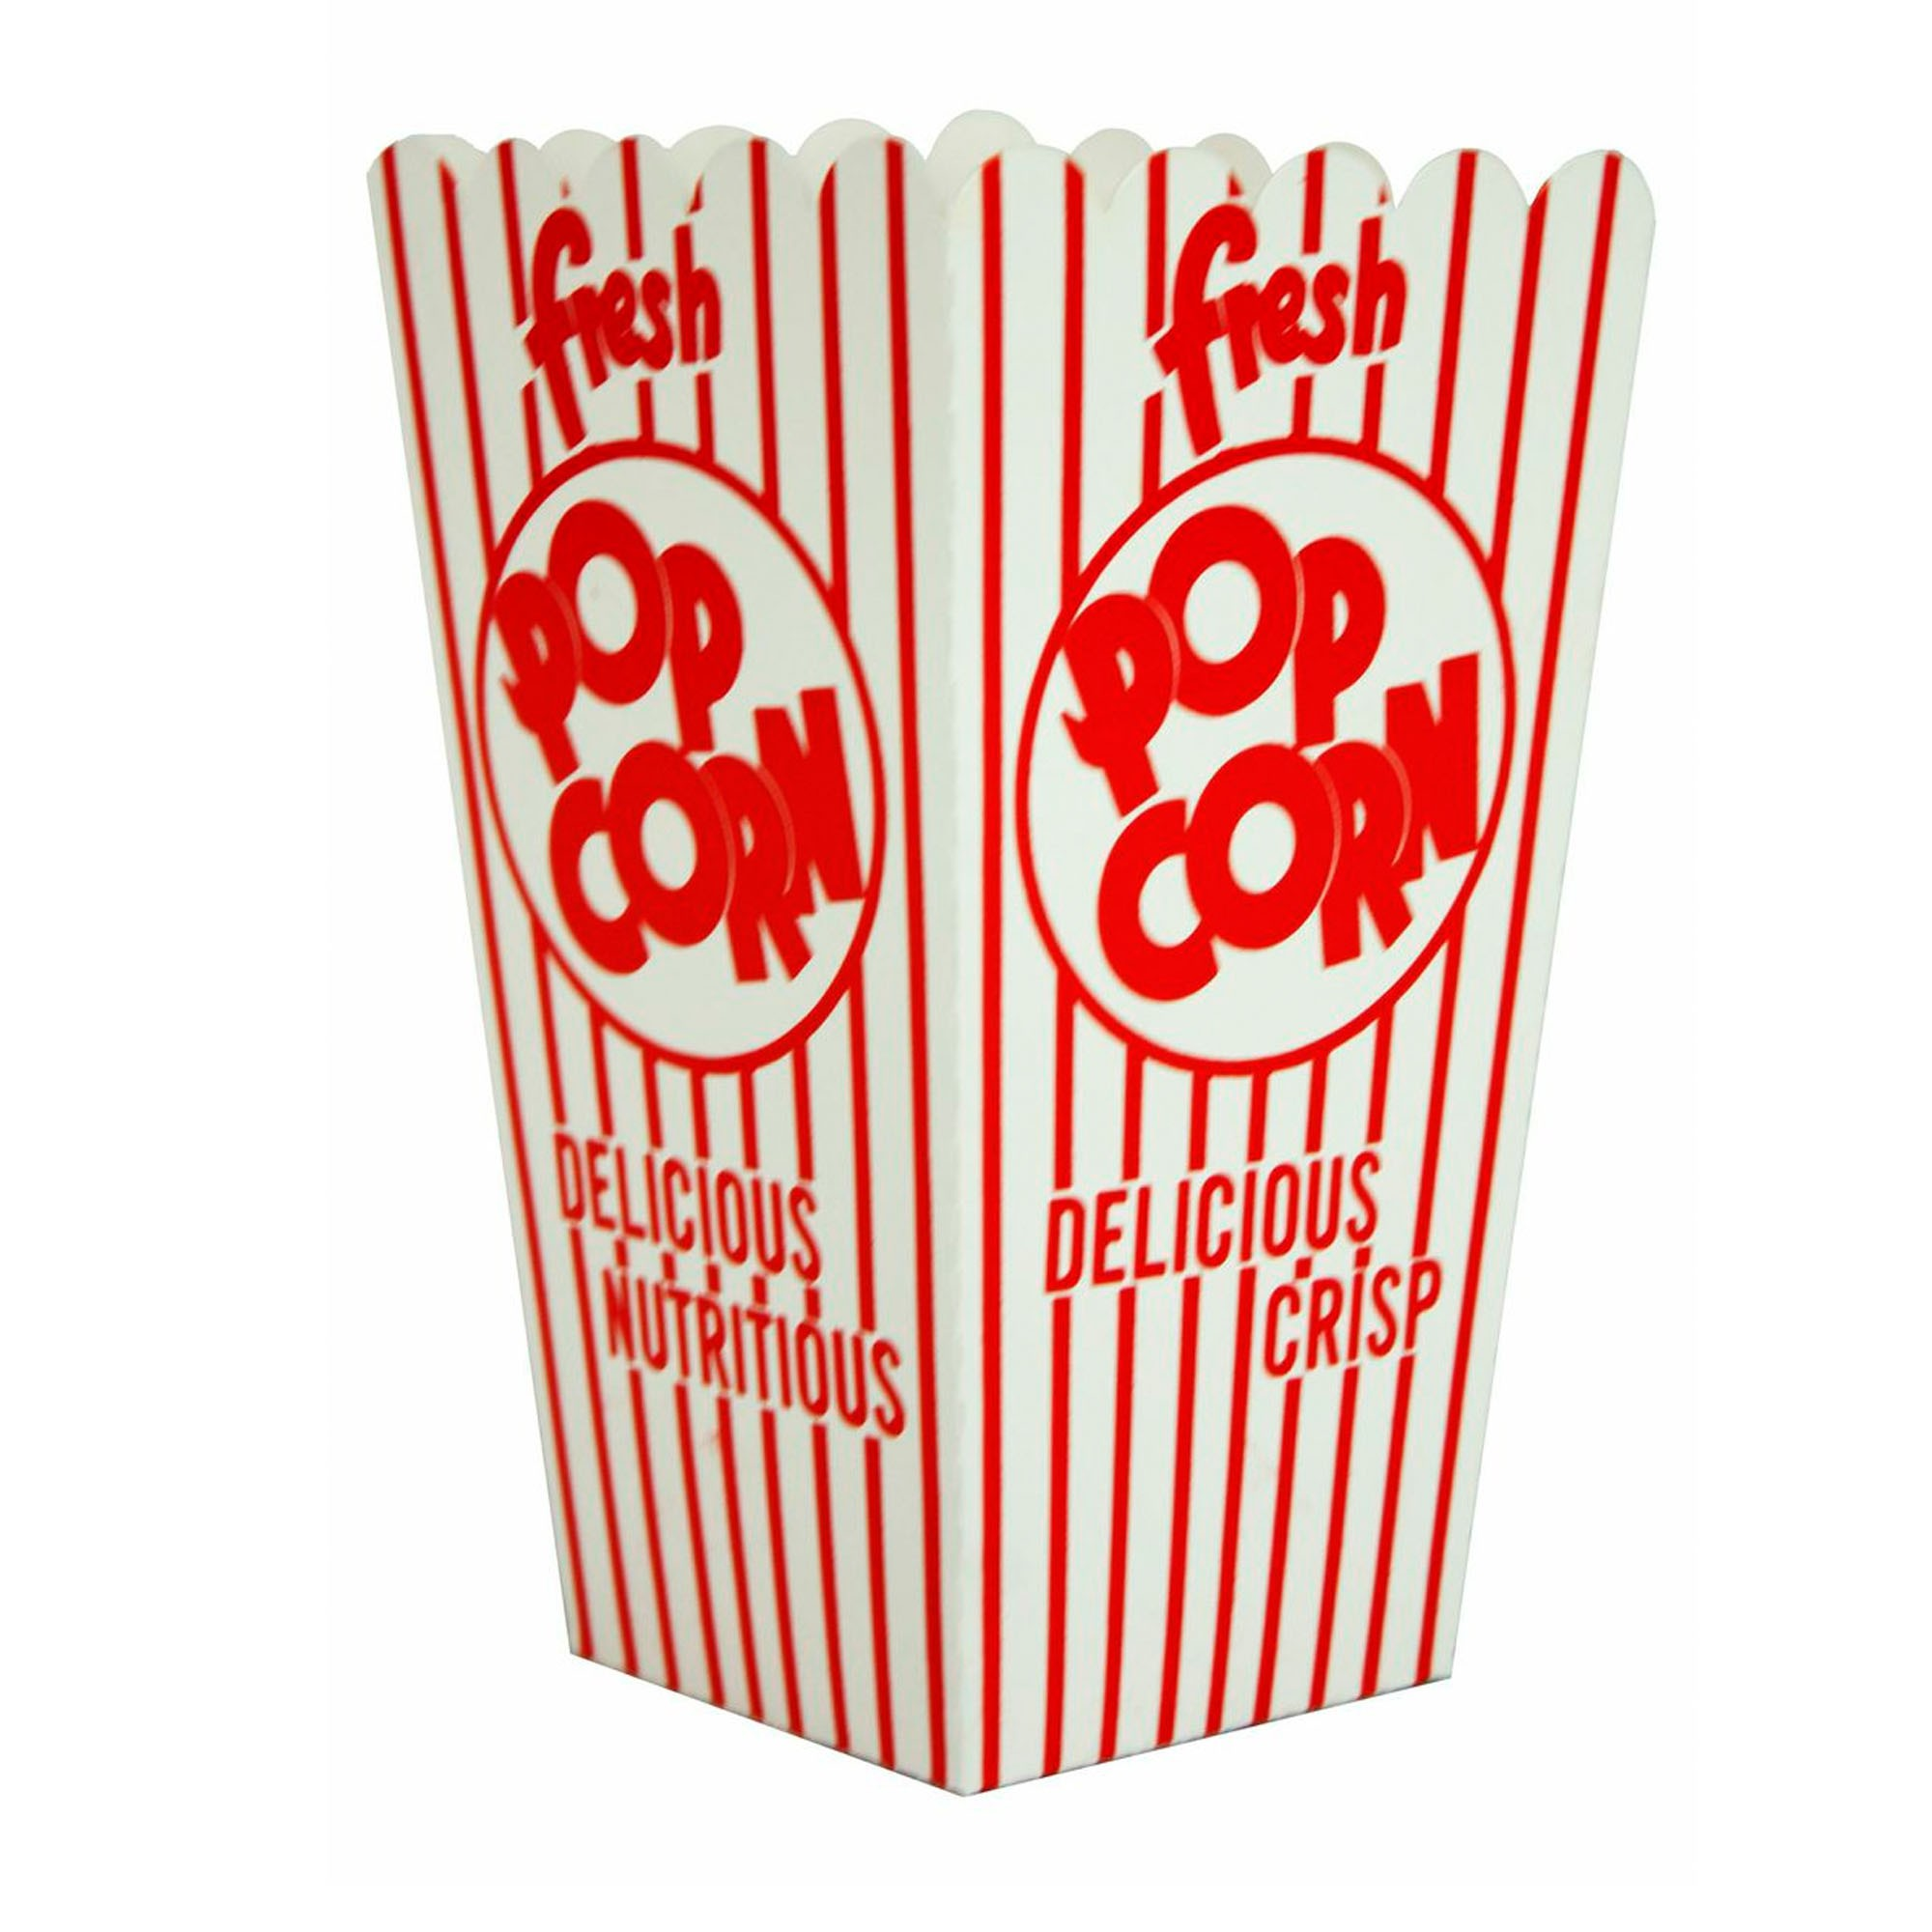 POPCORN059 Popcorn Scoop Box #48E 500/cs 1.75 2.0 o ...